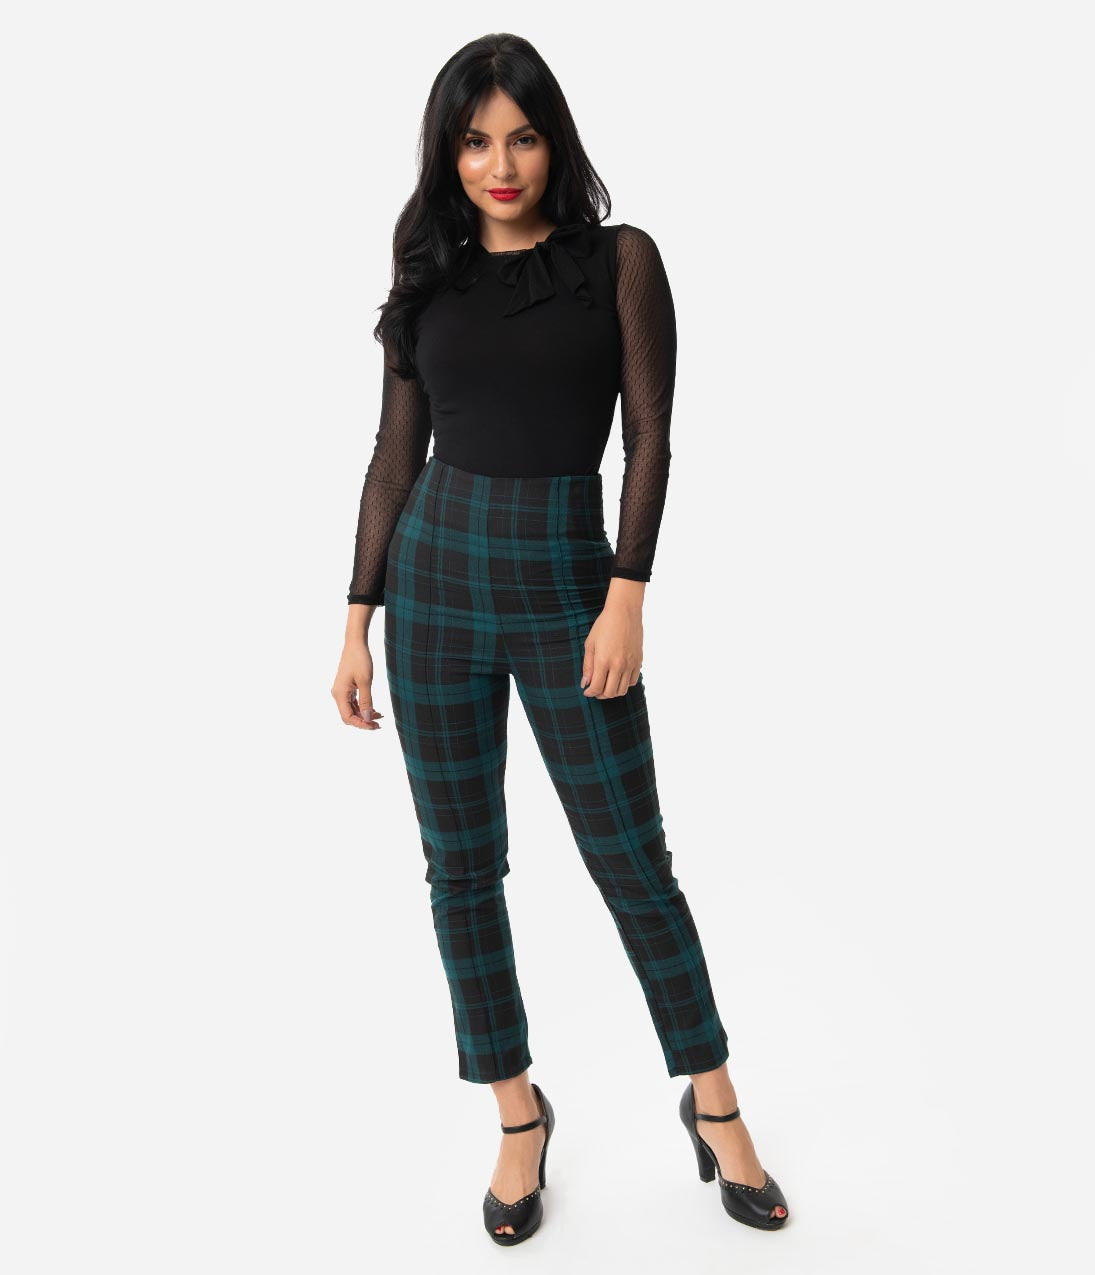 Vintage High Waisted Trousers, Sailor Pants, Jeans Collectif Black  Green Slither Check Bonnie High Waist Cigarette Pants $52.00 AT vintagedancer.com